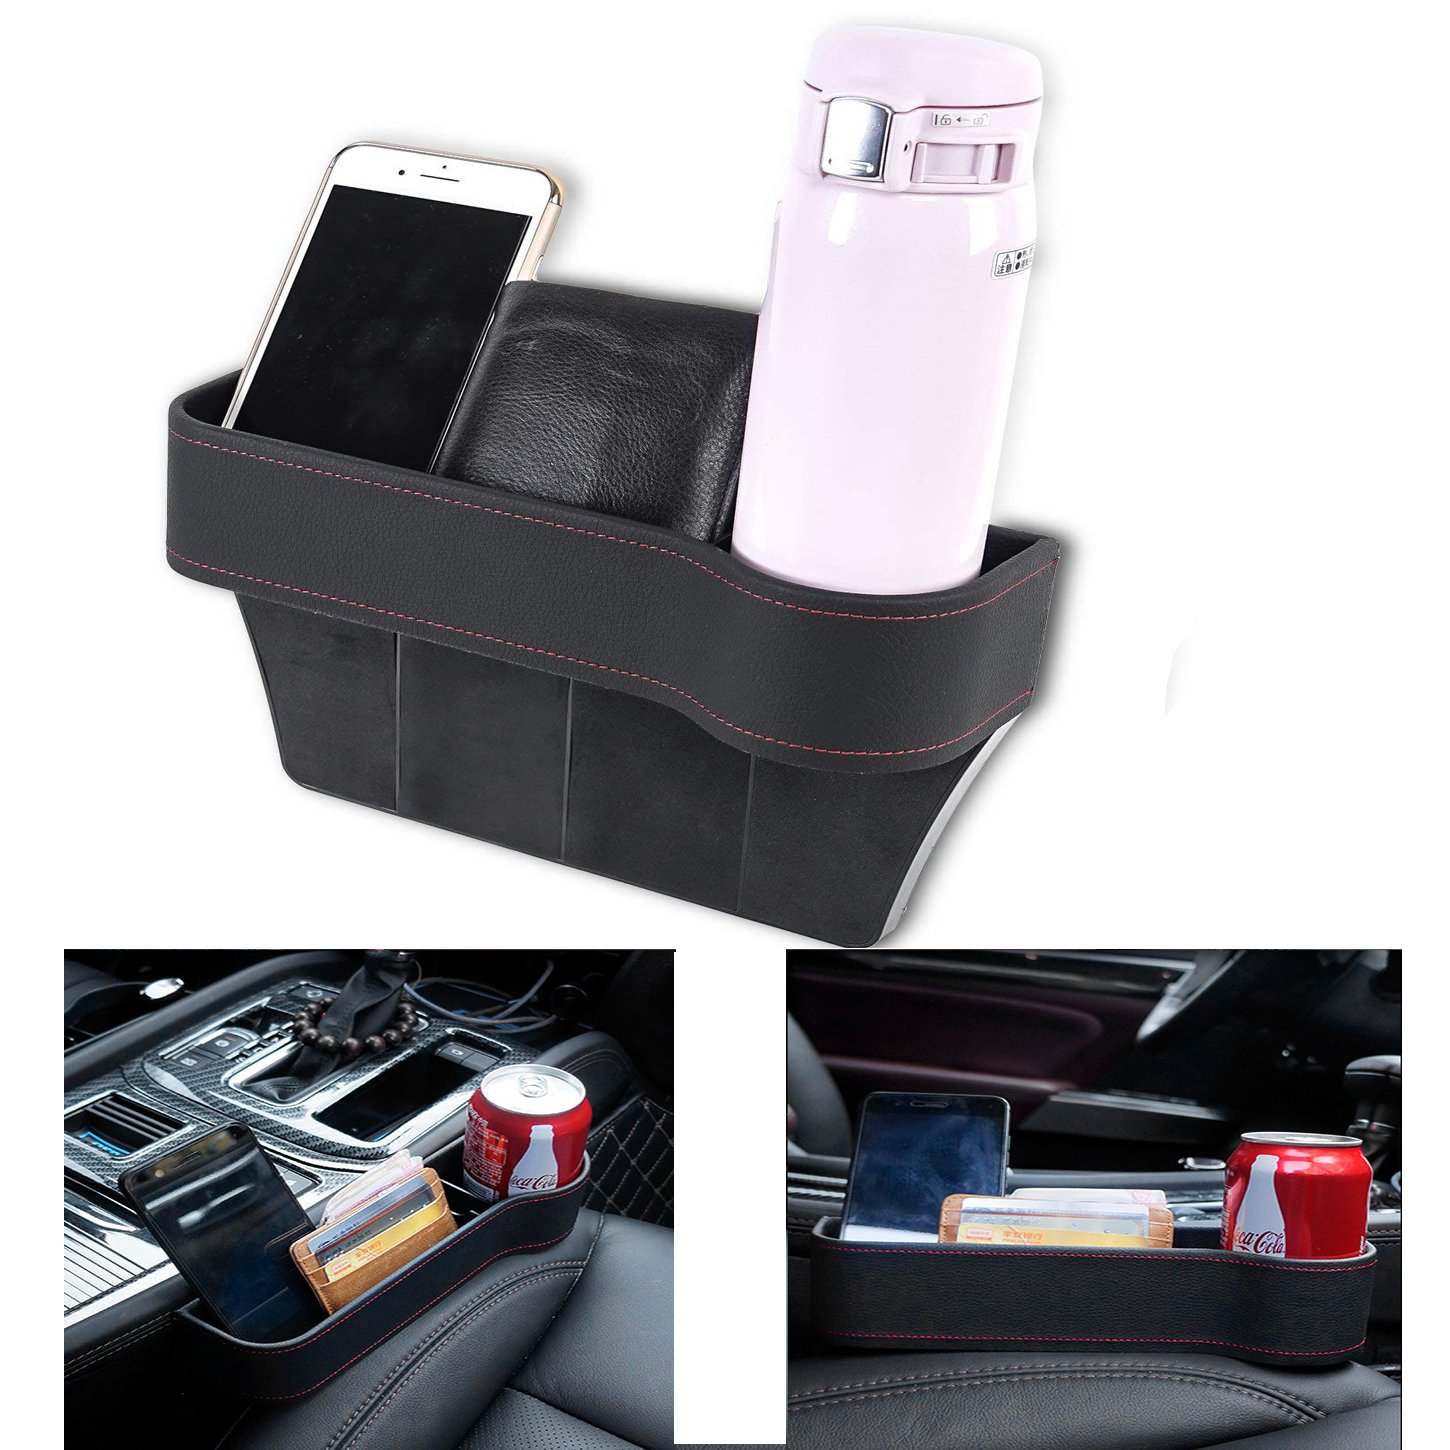 VVHOOY Car Seat Pockets, PU Leather Multi-function Car Interior Accessories Seat Crevice Storage Box Drink Cups Cups Phone Sunglasses Coins Keys(Passenger Side)